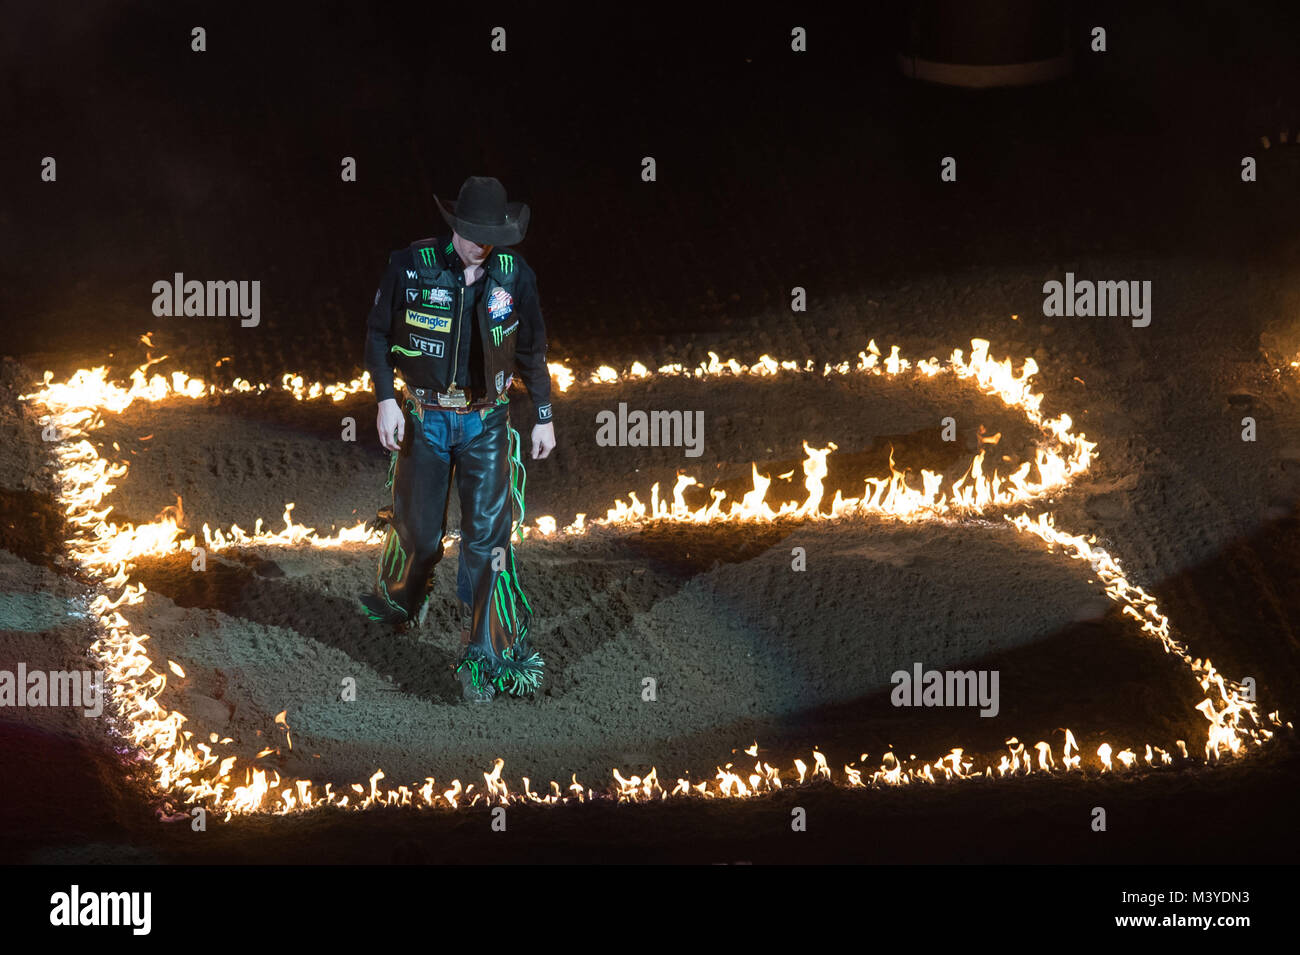 Kansas City, Missouri, USA. 10th Feb, 2018. MASON LOWE walks through the flames before the PBR Caterpillar Classic - Stock Image